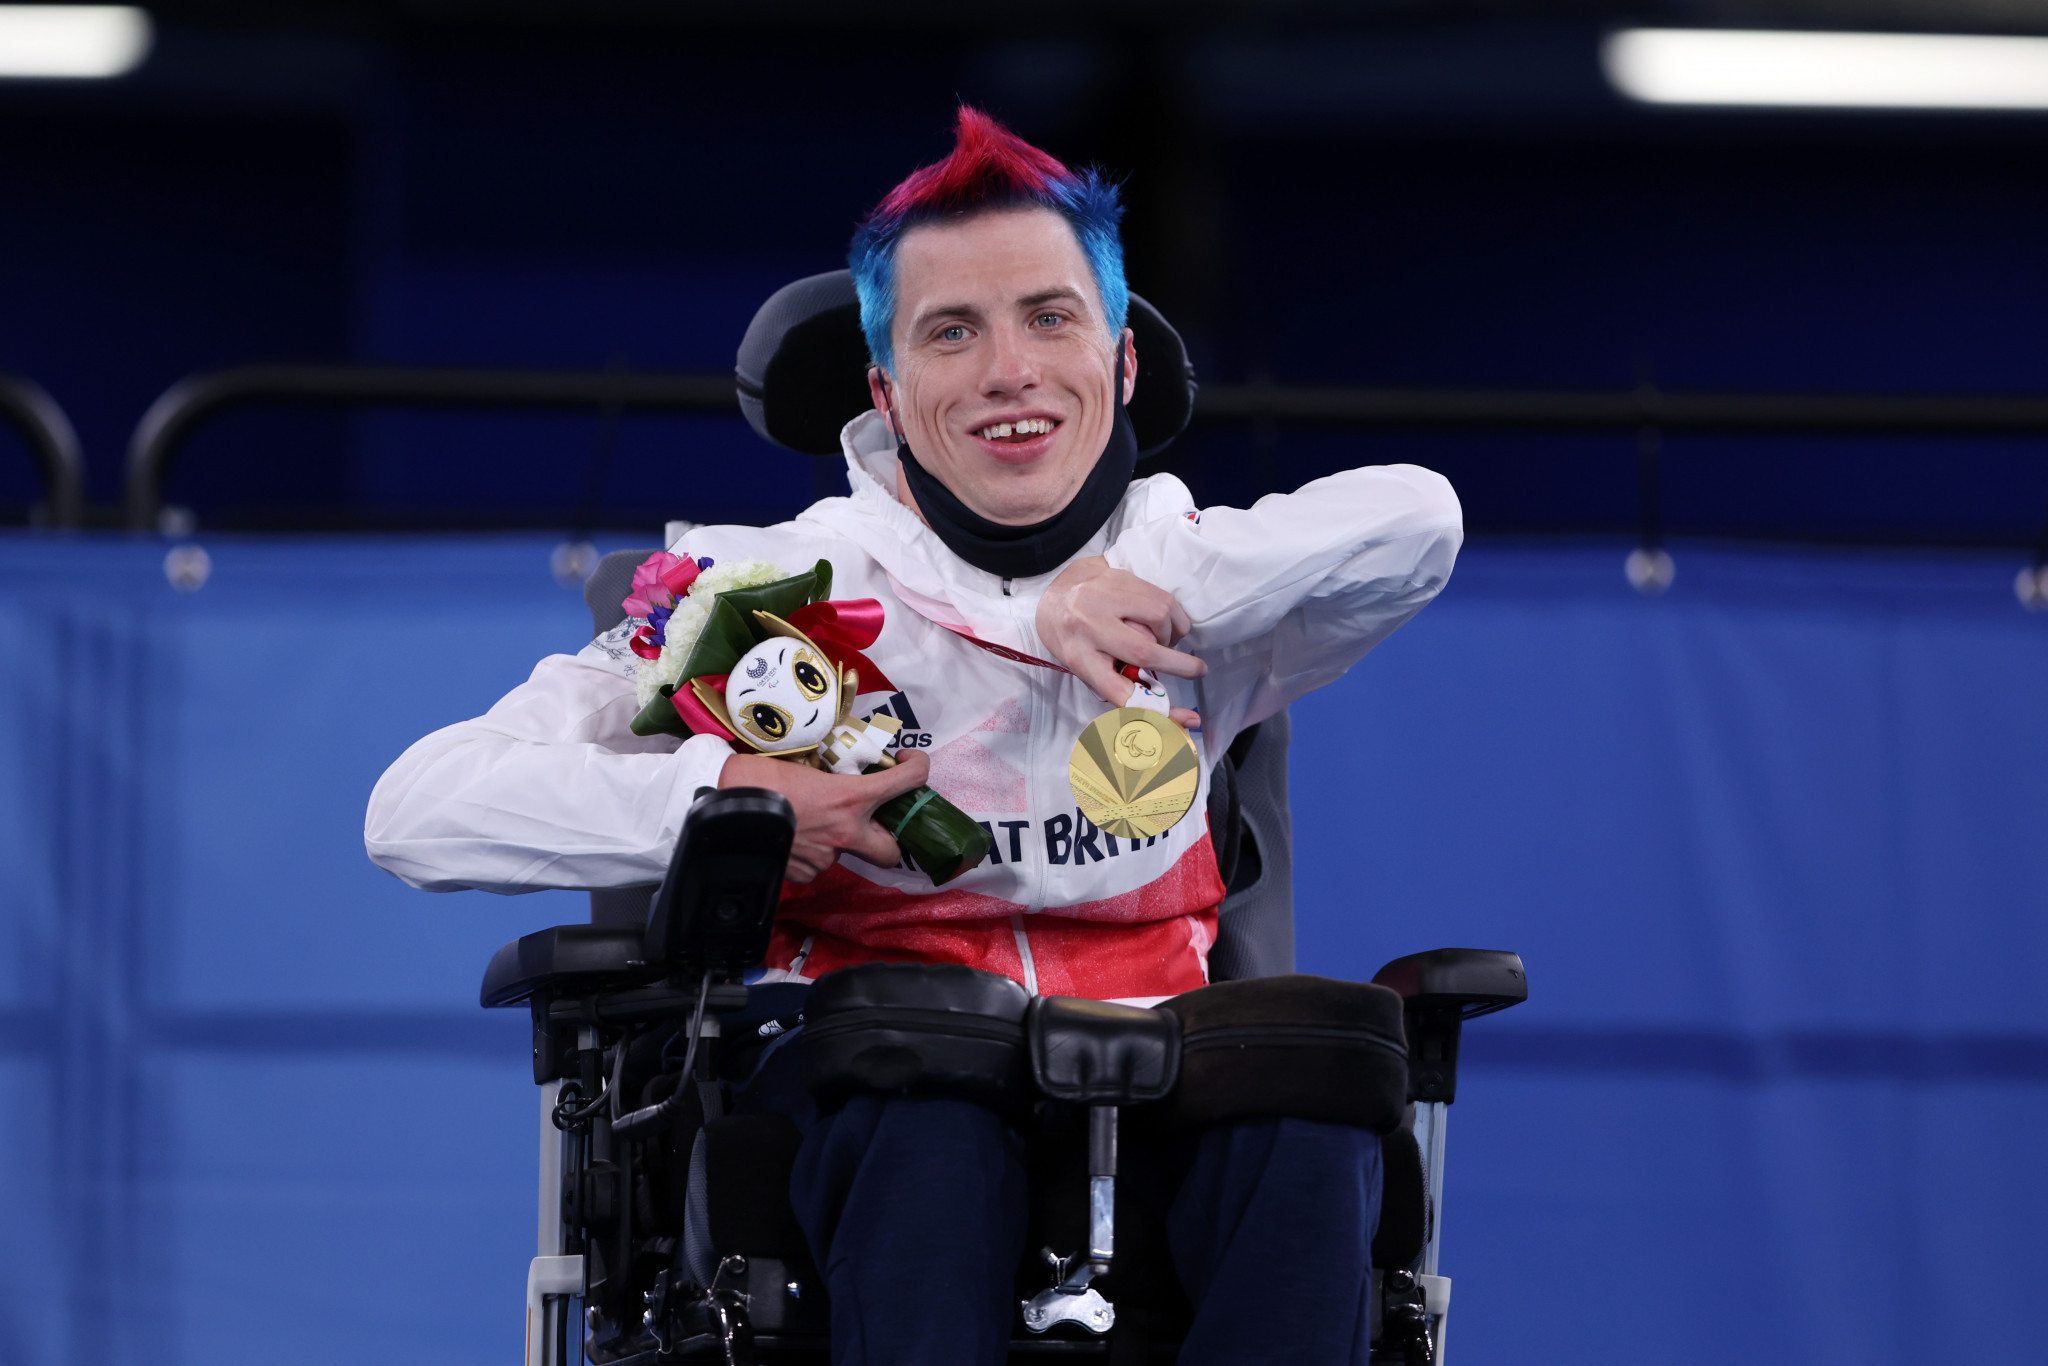 Four different nations claim gold in individual boccia, as Britain's David Smith retains BC1 title